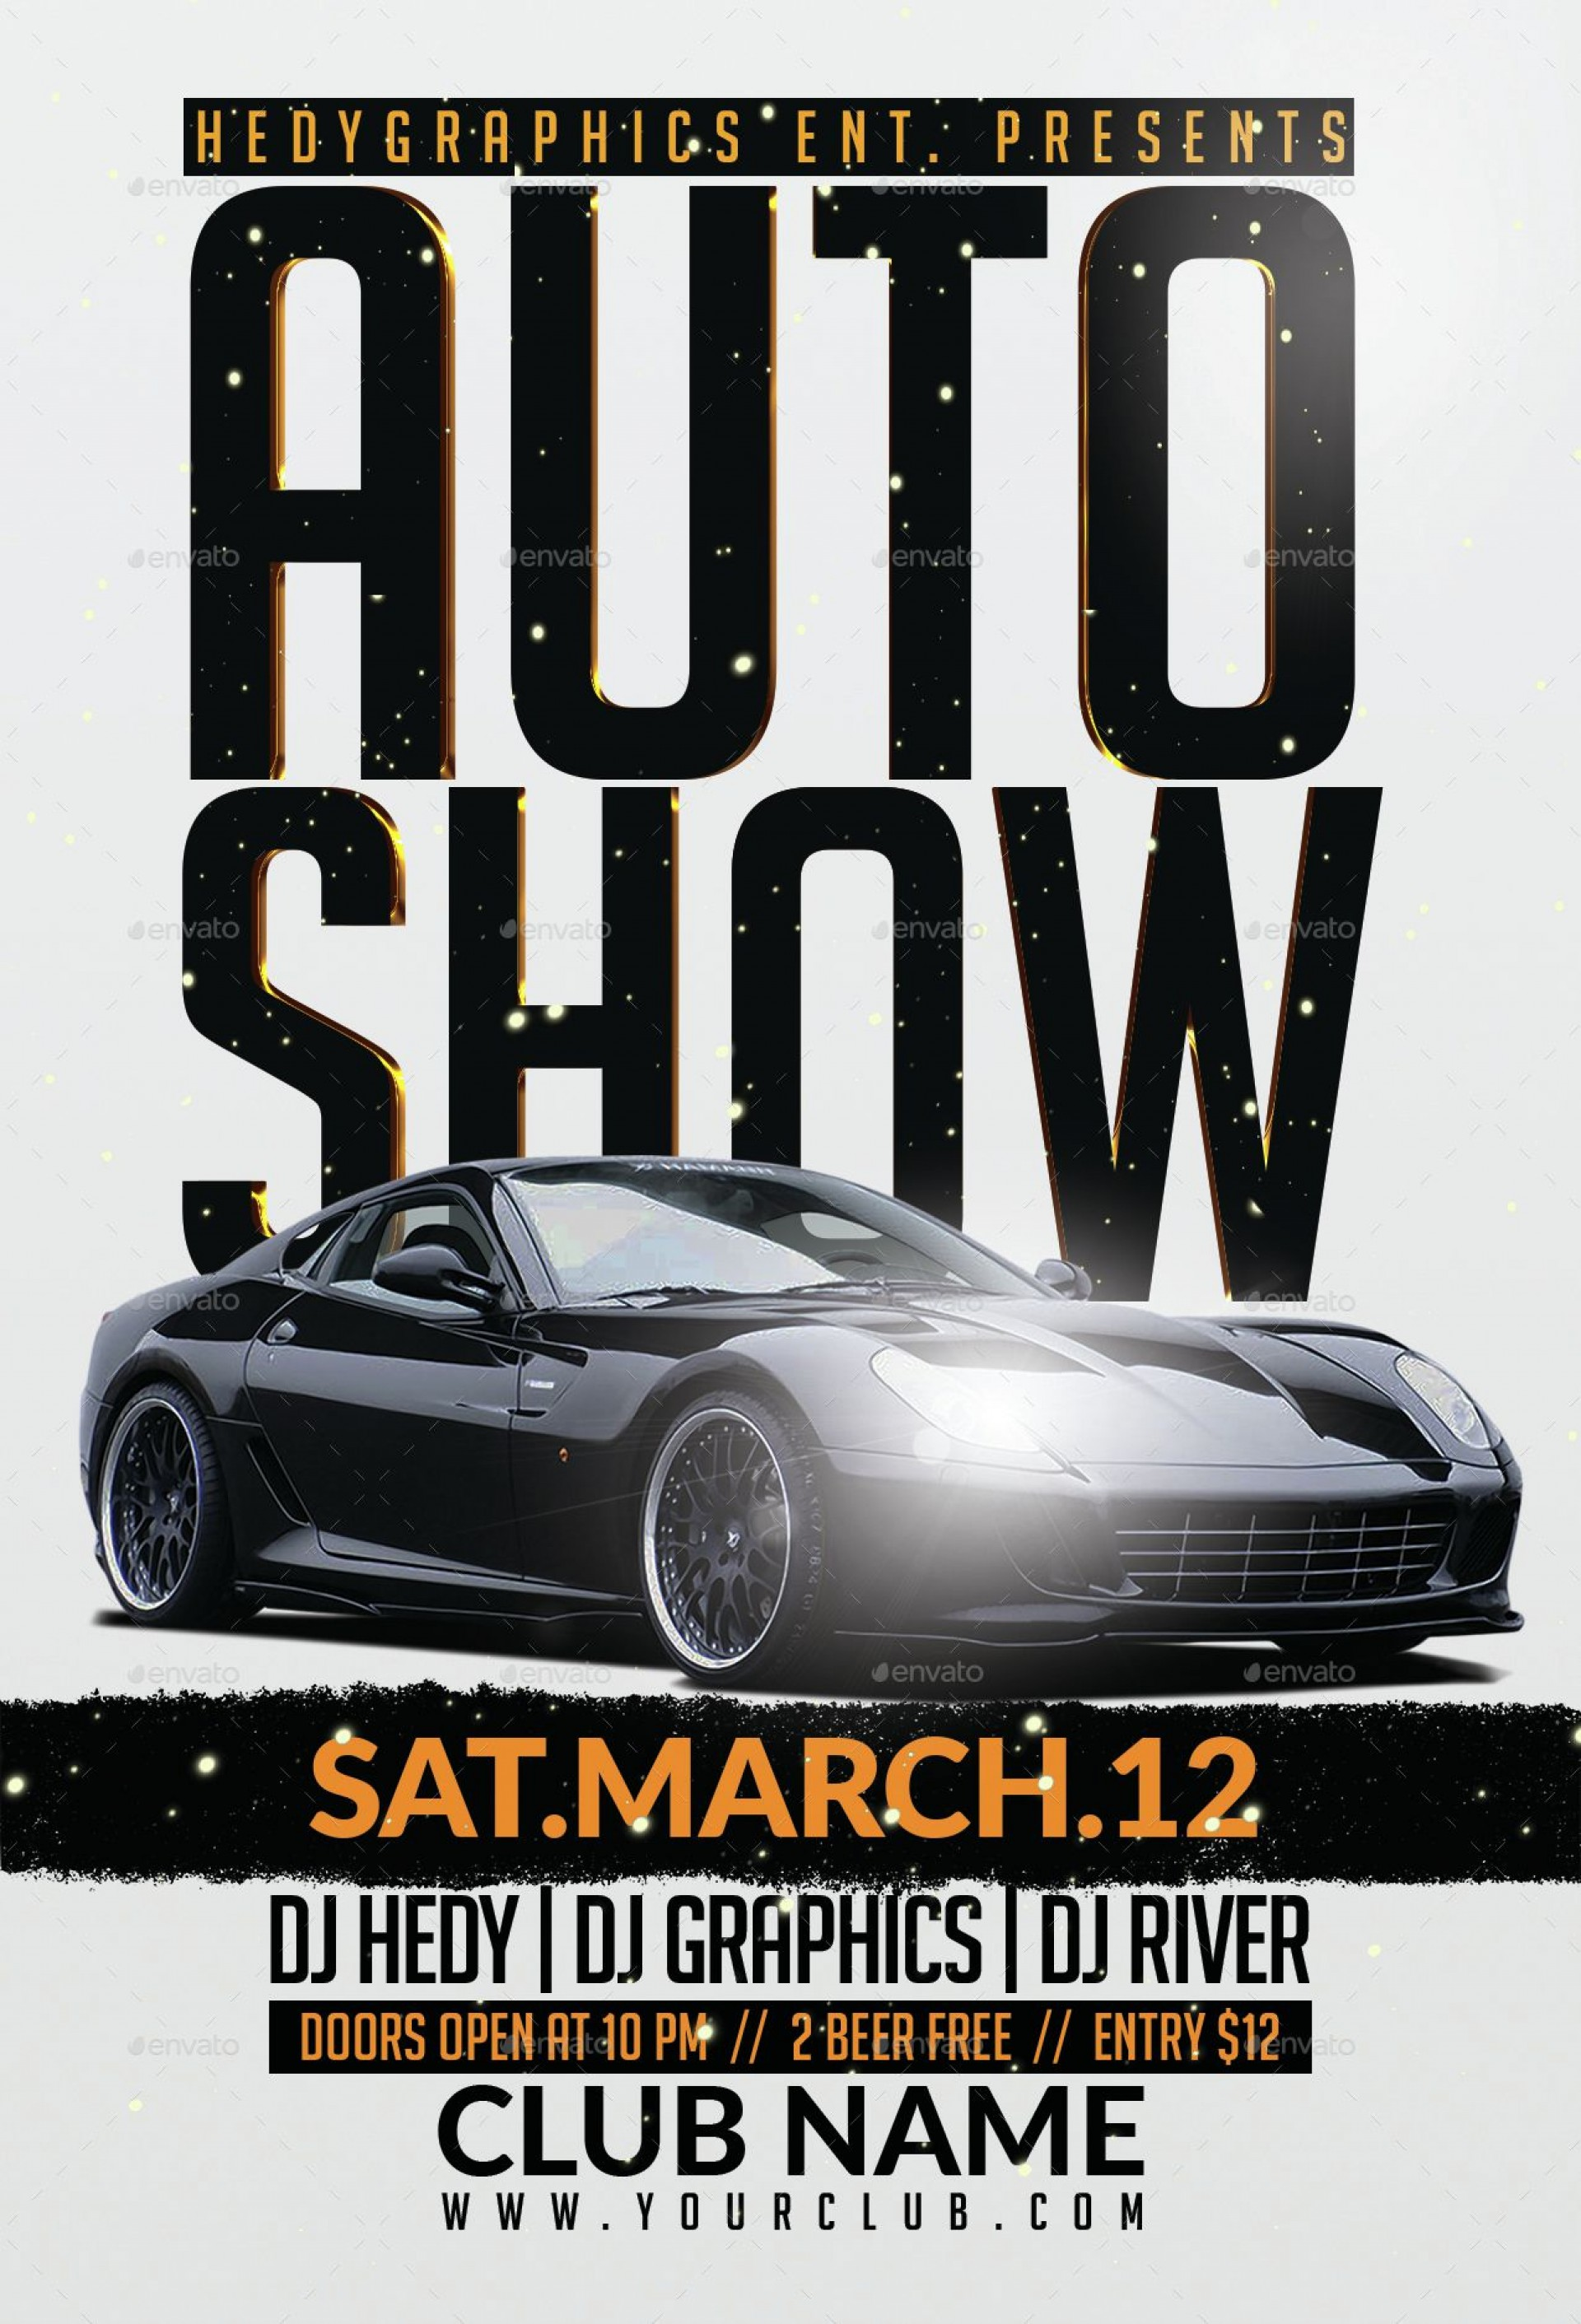 003 Top Free Car Show Flyer Template Image  Psd And Bike1920